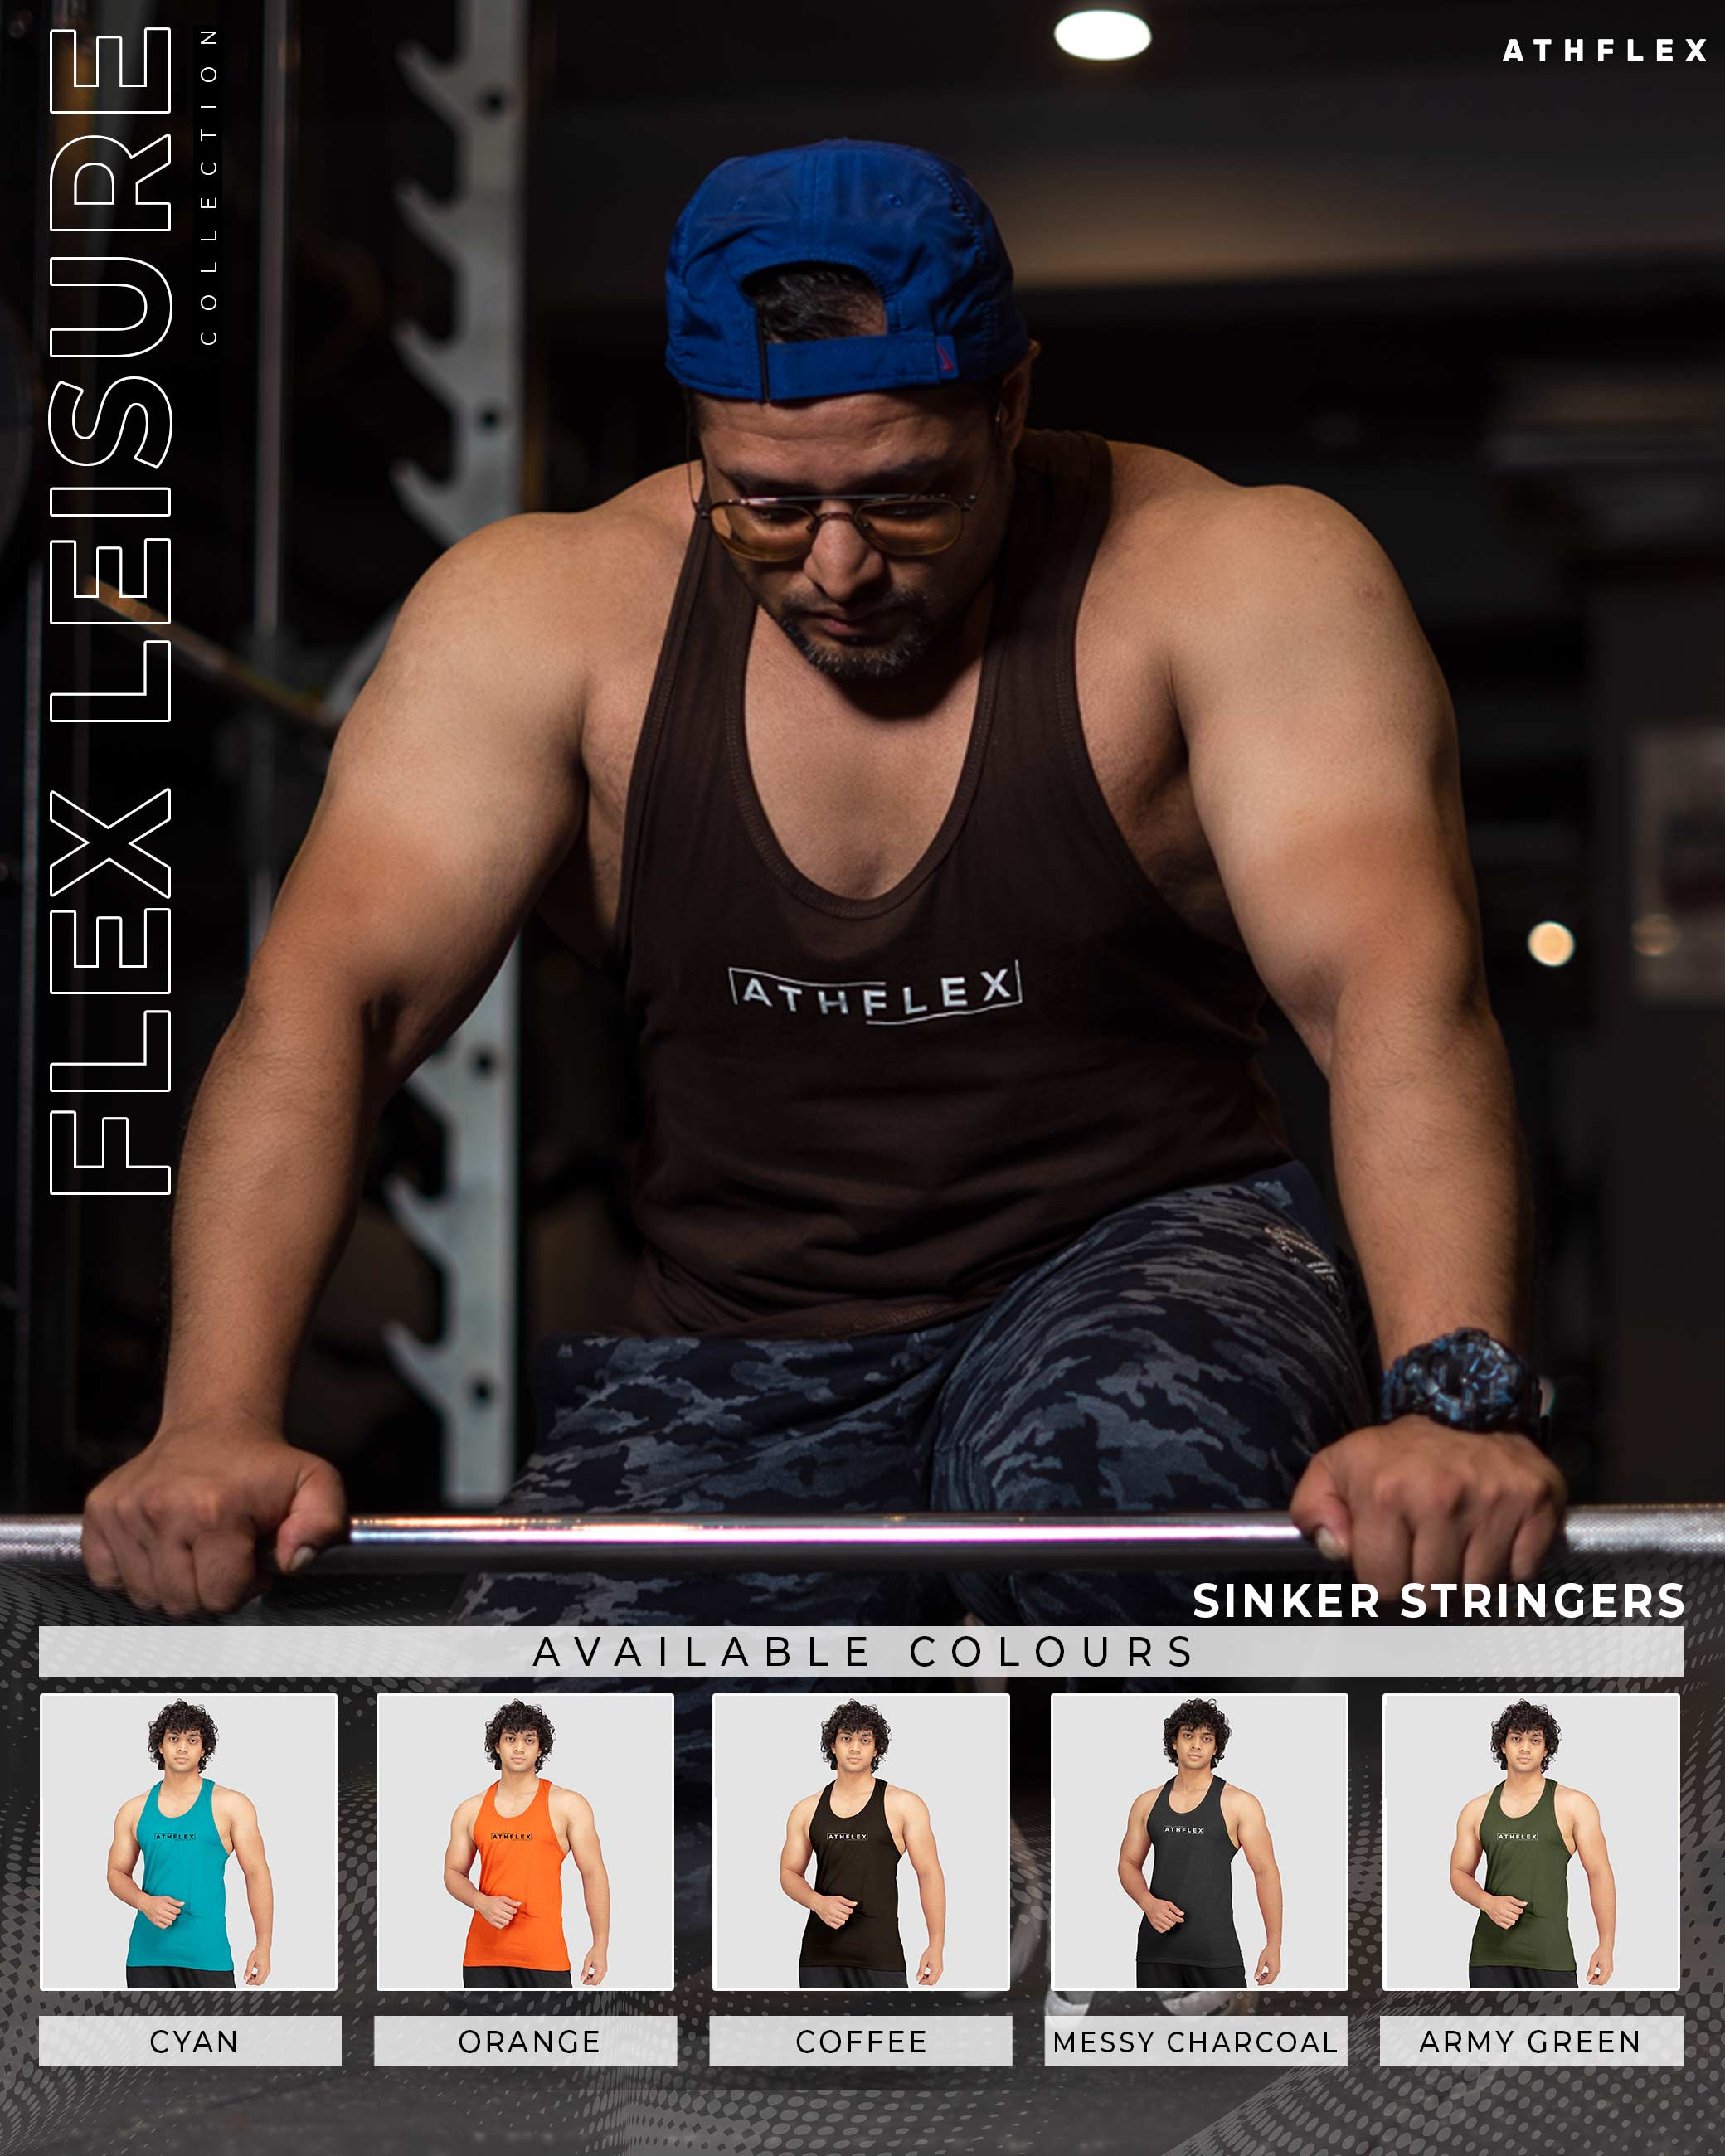 Flex Leisure Sinker Stringers(Orange) Athflex